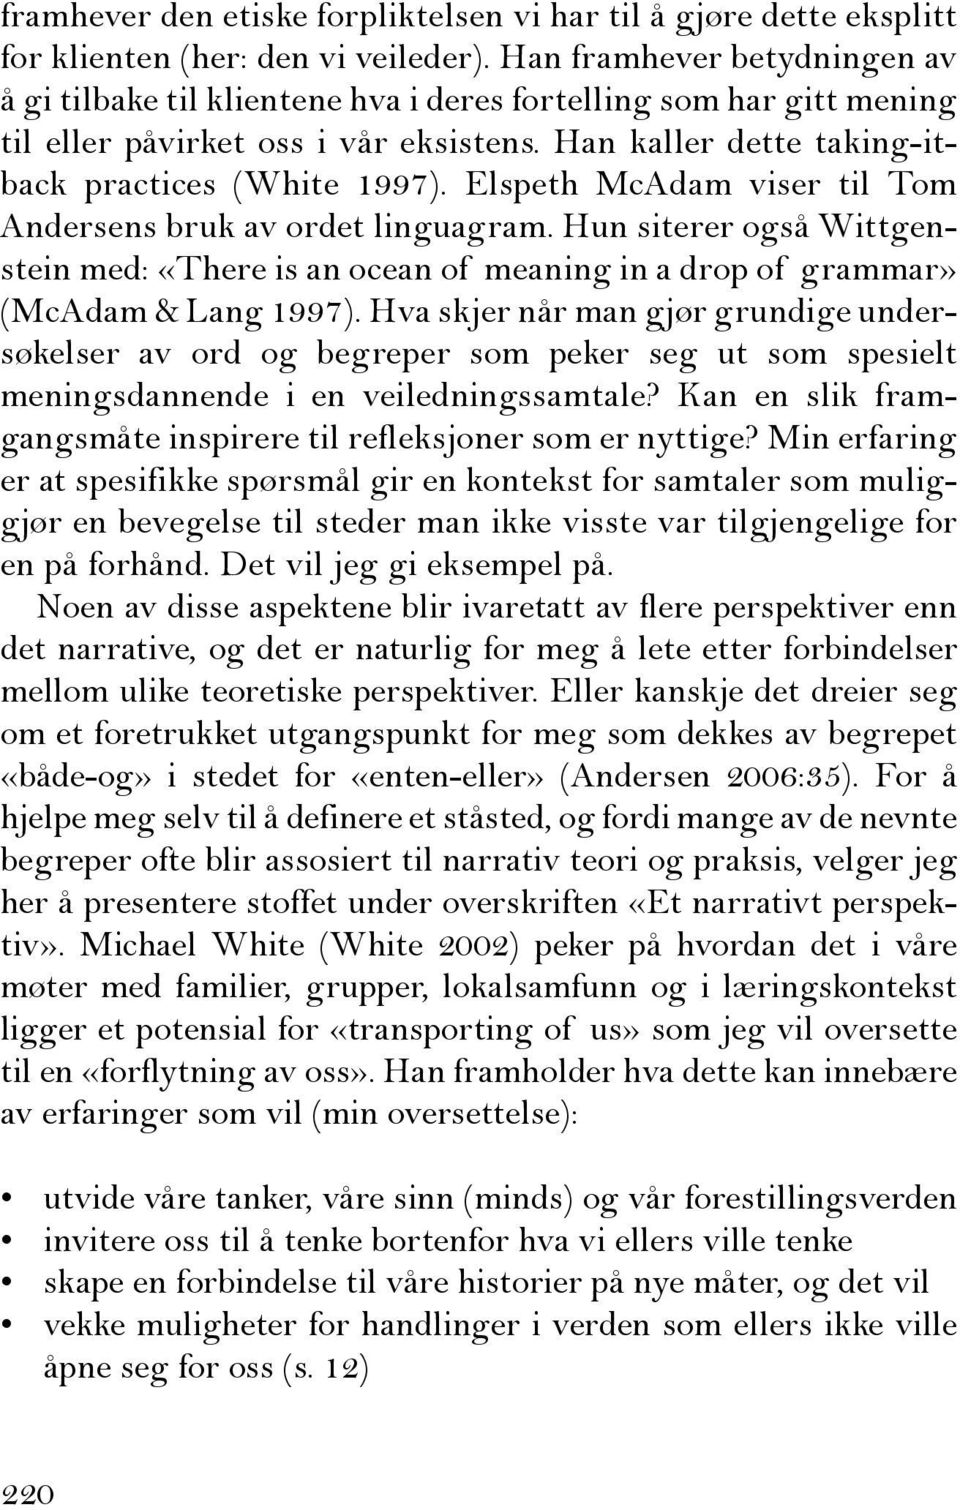 Elspeth McAdam viser til Tom Andersens bruk av ordet linguagram. Hun siterer også Wittgenstein med: «There is an ocean of meaning in a drop of grammar» (McAdam & Lang 1997).